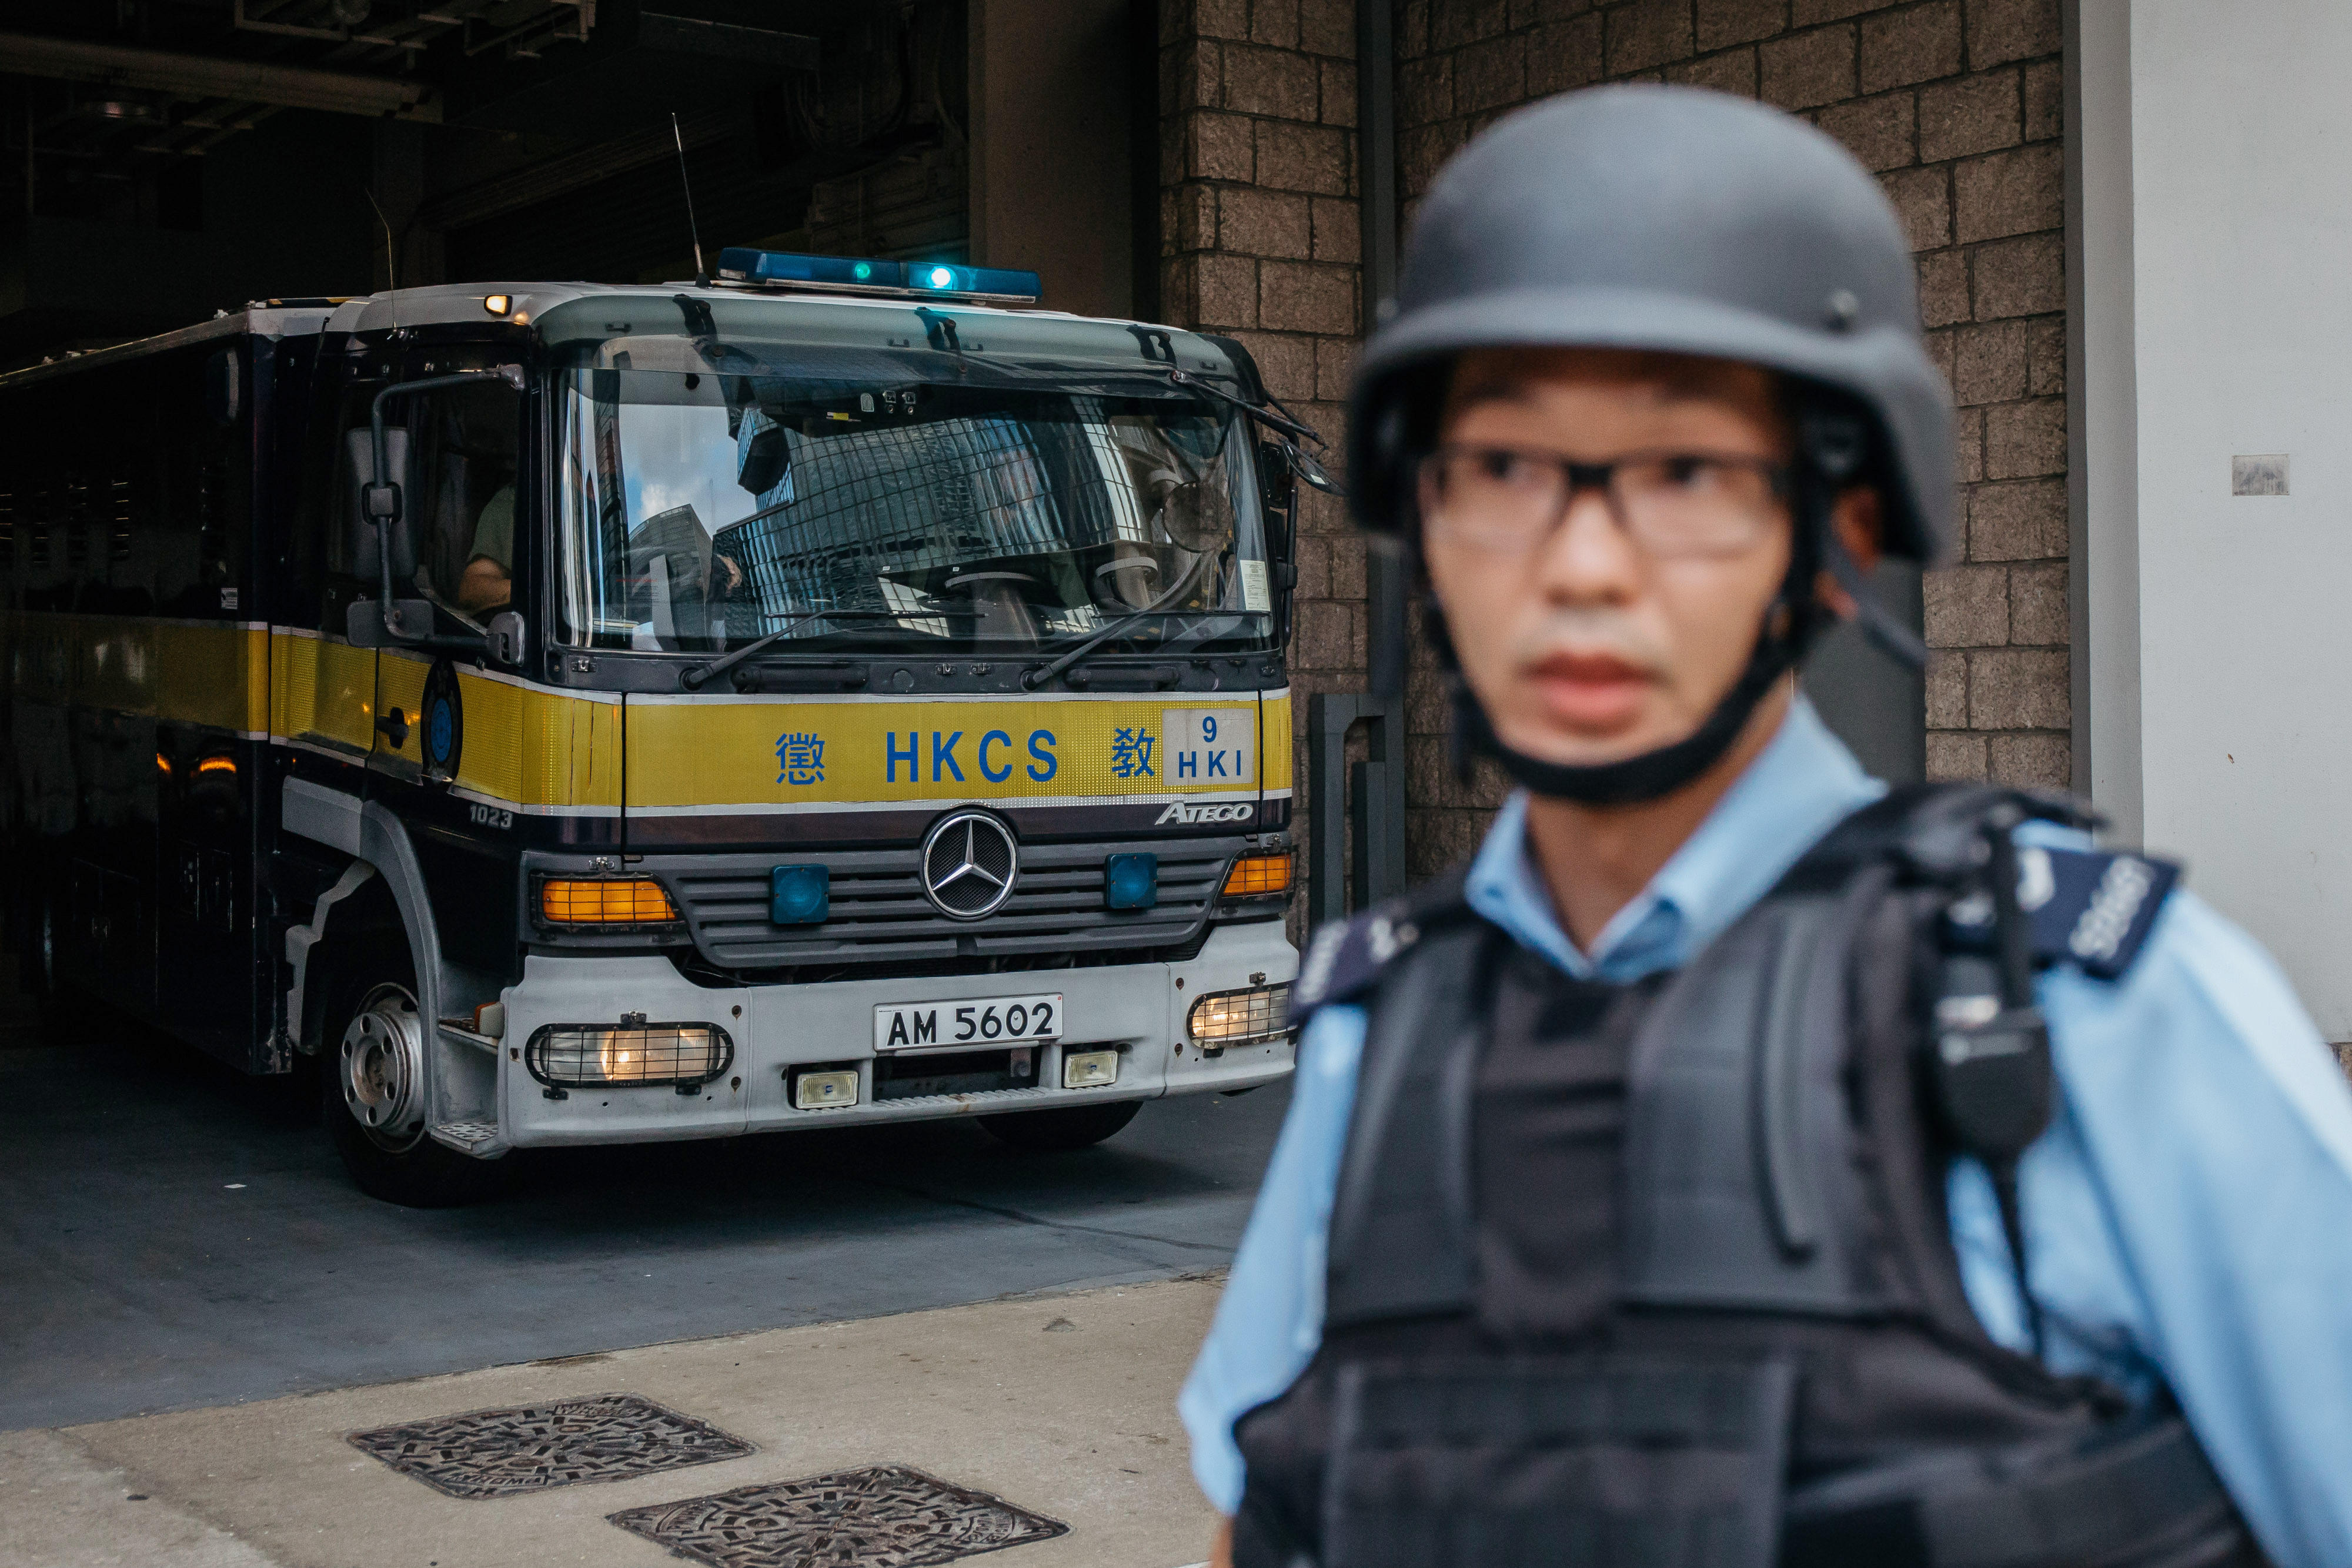 A police officer stands guard as a prison vehicle escorting Rurik Jutting, a former Bank of America Merrill Lynch employee, leaves the High Court in Hong Kong on Oct. 24, 2016